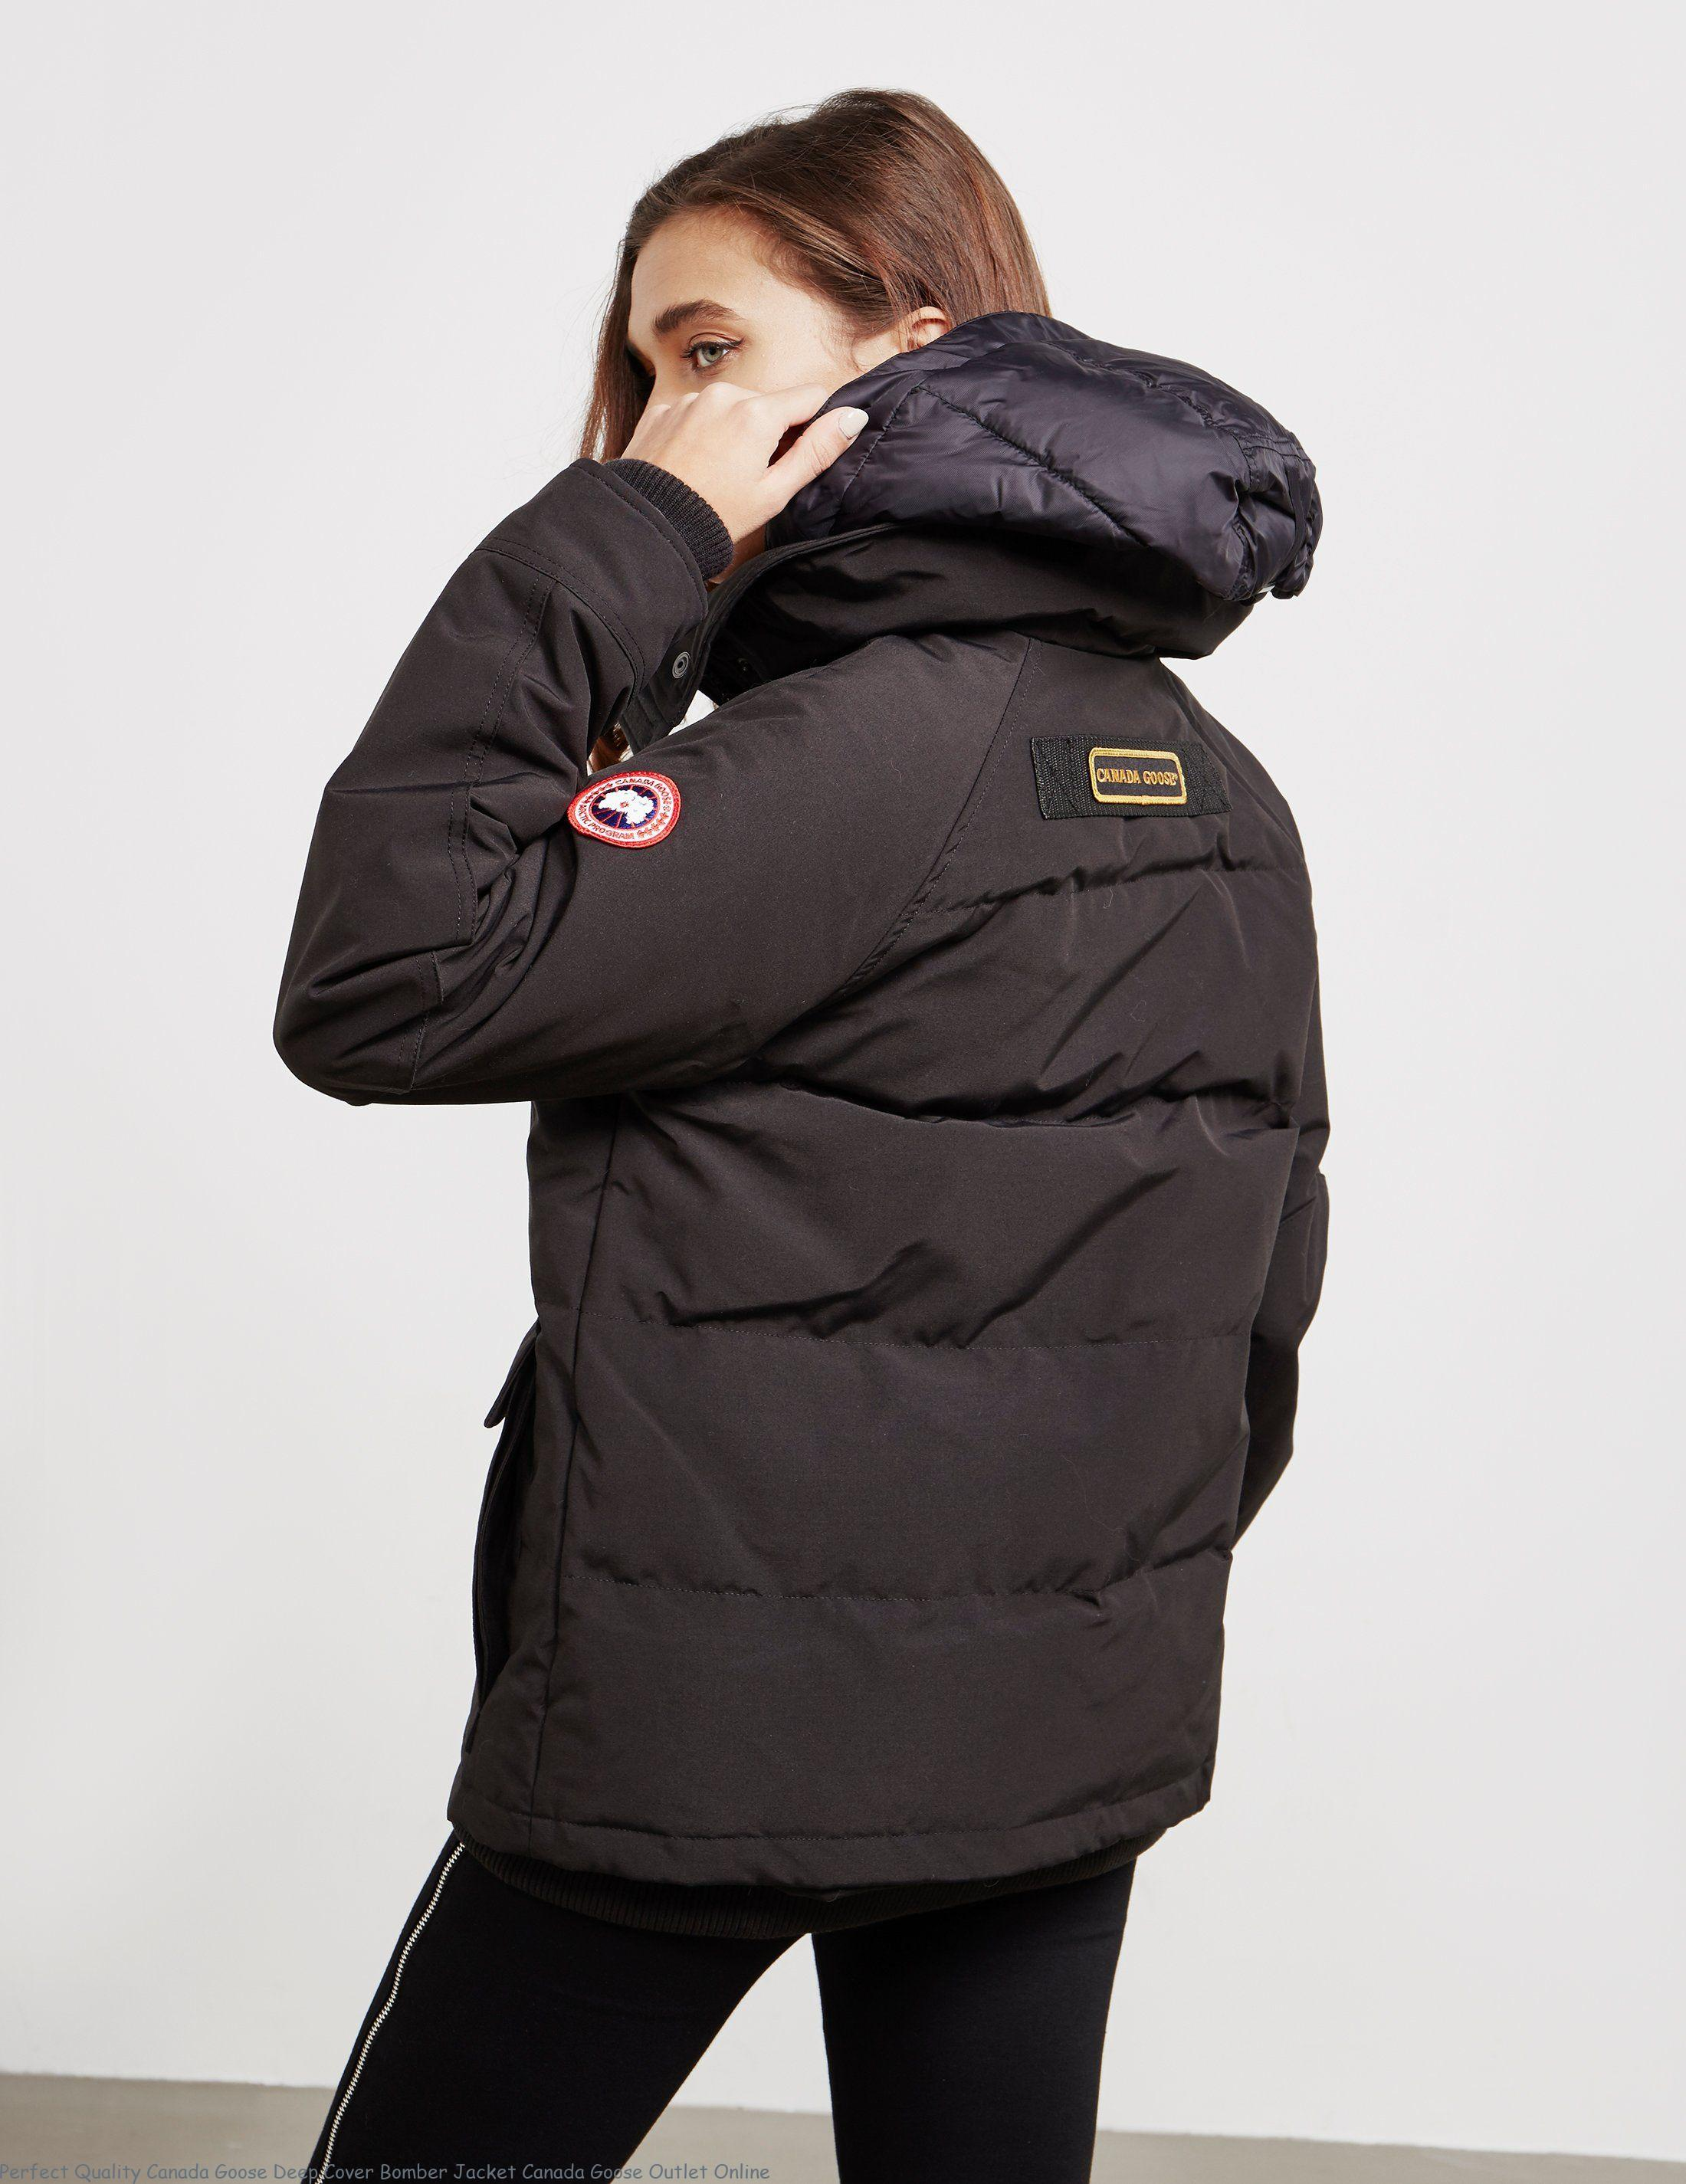 Perfect Quality Canada Goose Deep Cover Bomber Jacket Canada Goose Outlet  Online – Canada Goose Outlet Sale – Best Canada Goose Jackets fe947c2a9855